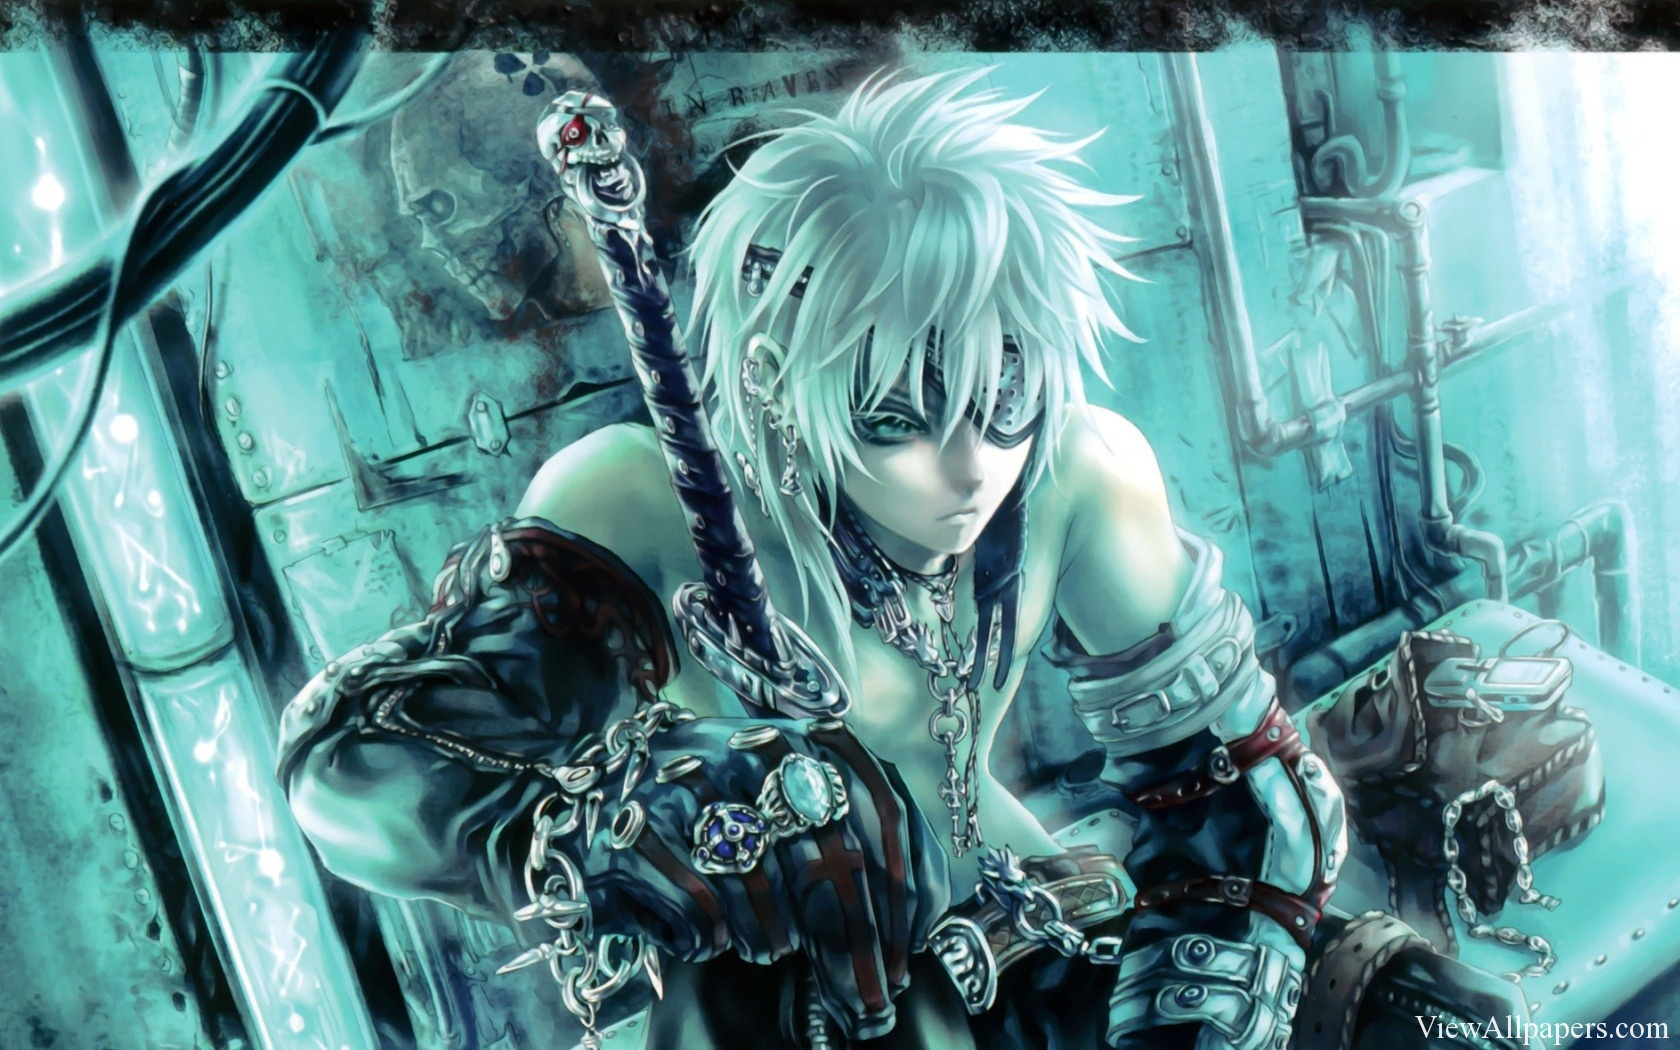 Anime Fighter Warrior Wallpaper High Resolution Free Download